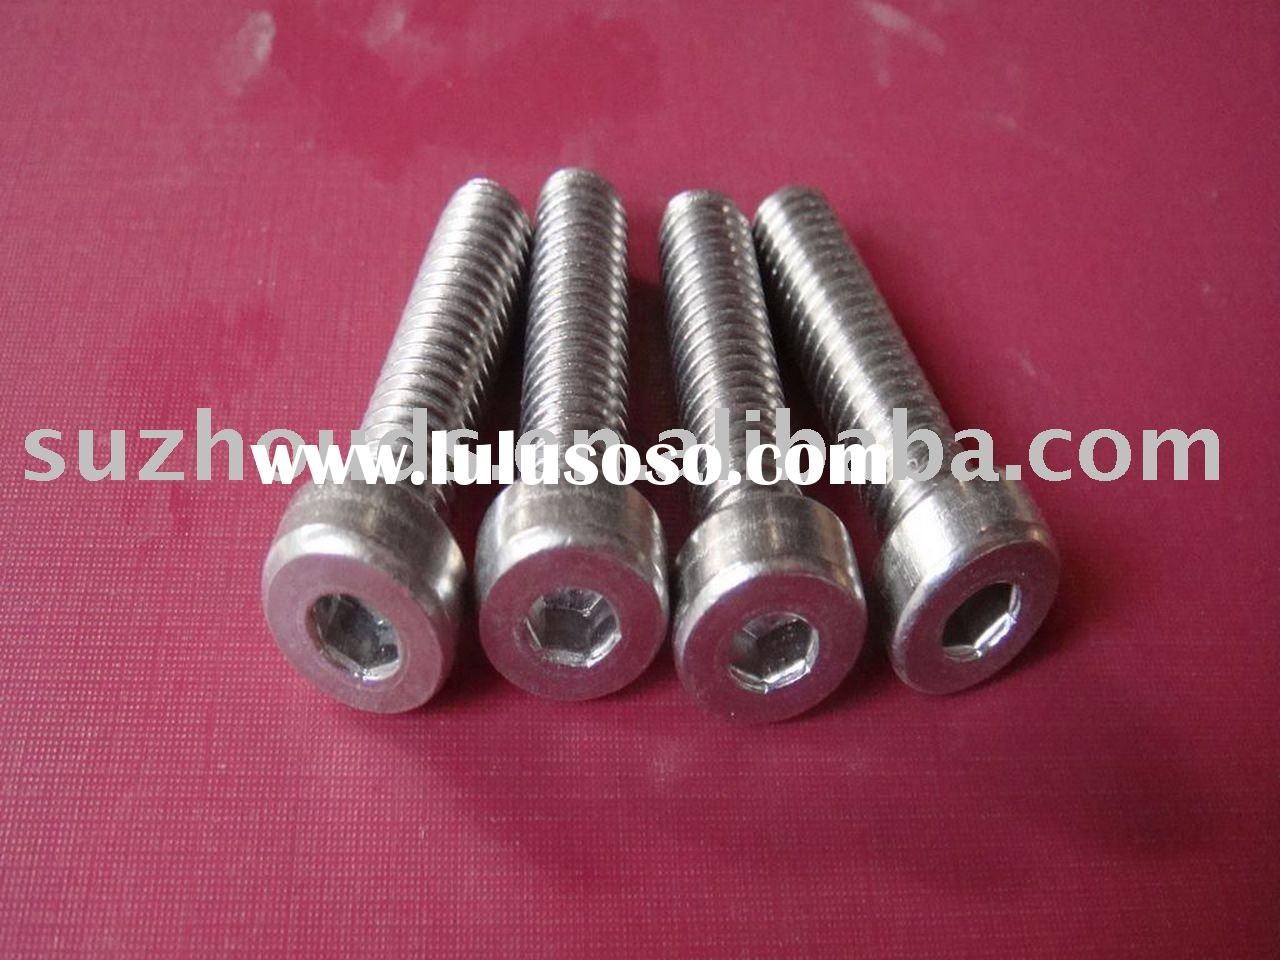 Stainless Hex socket thin head cap screws